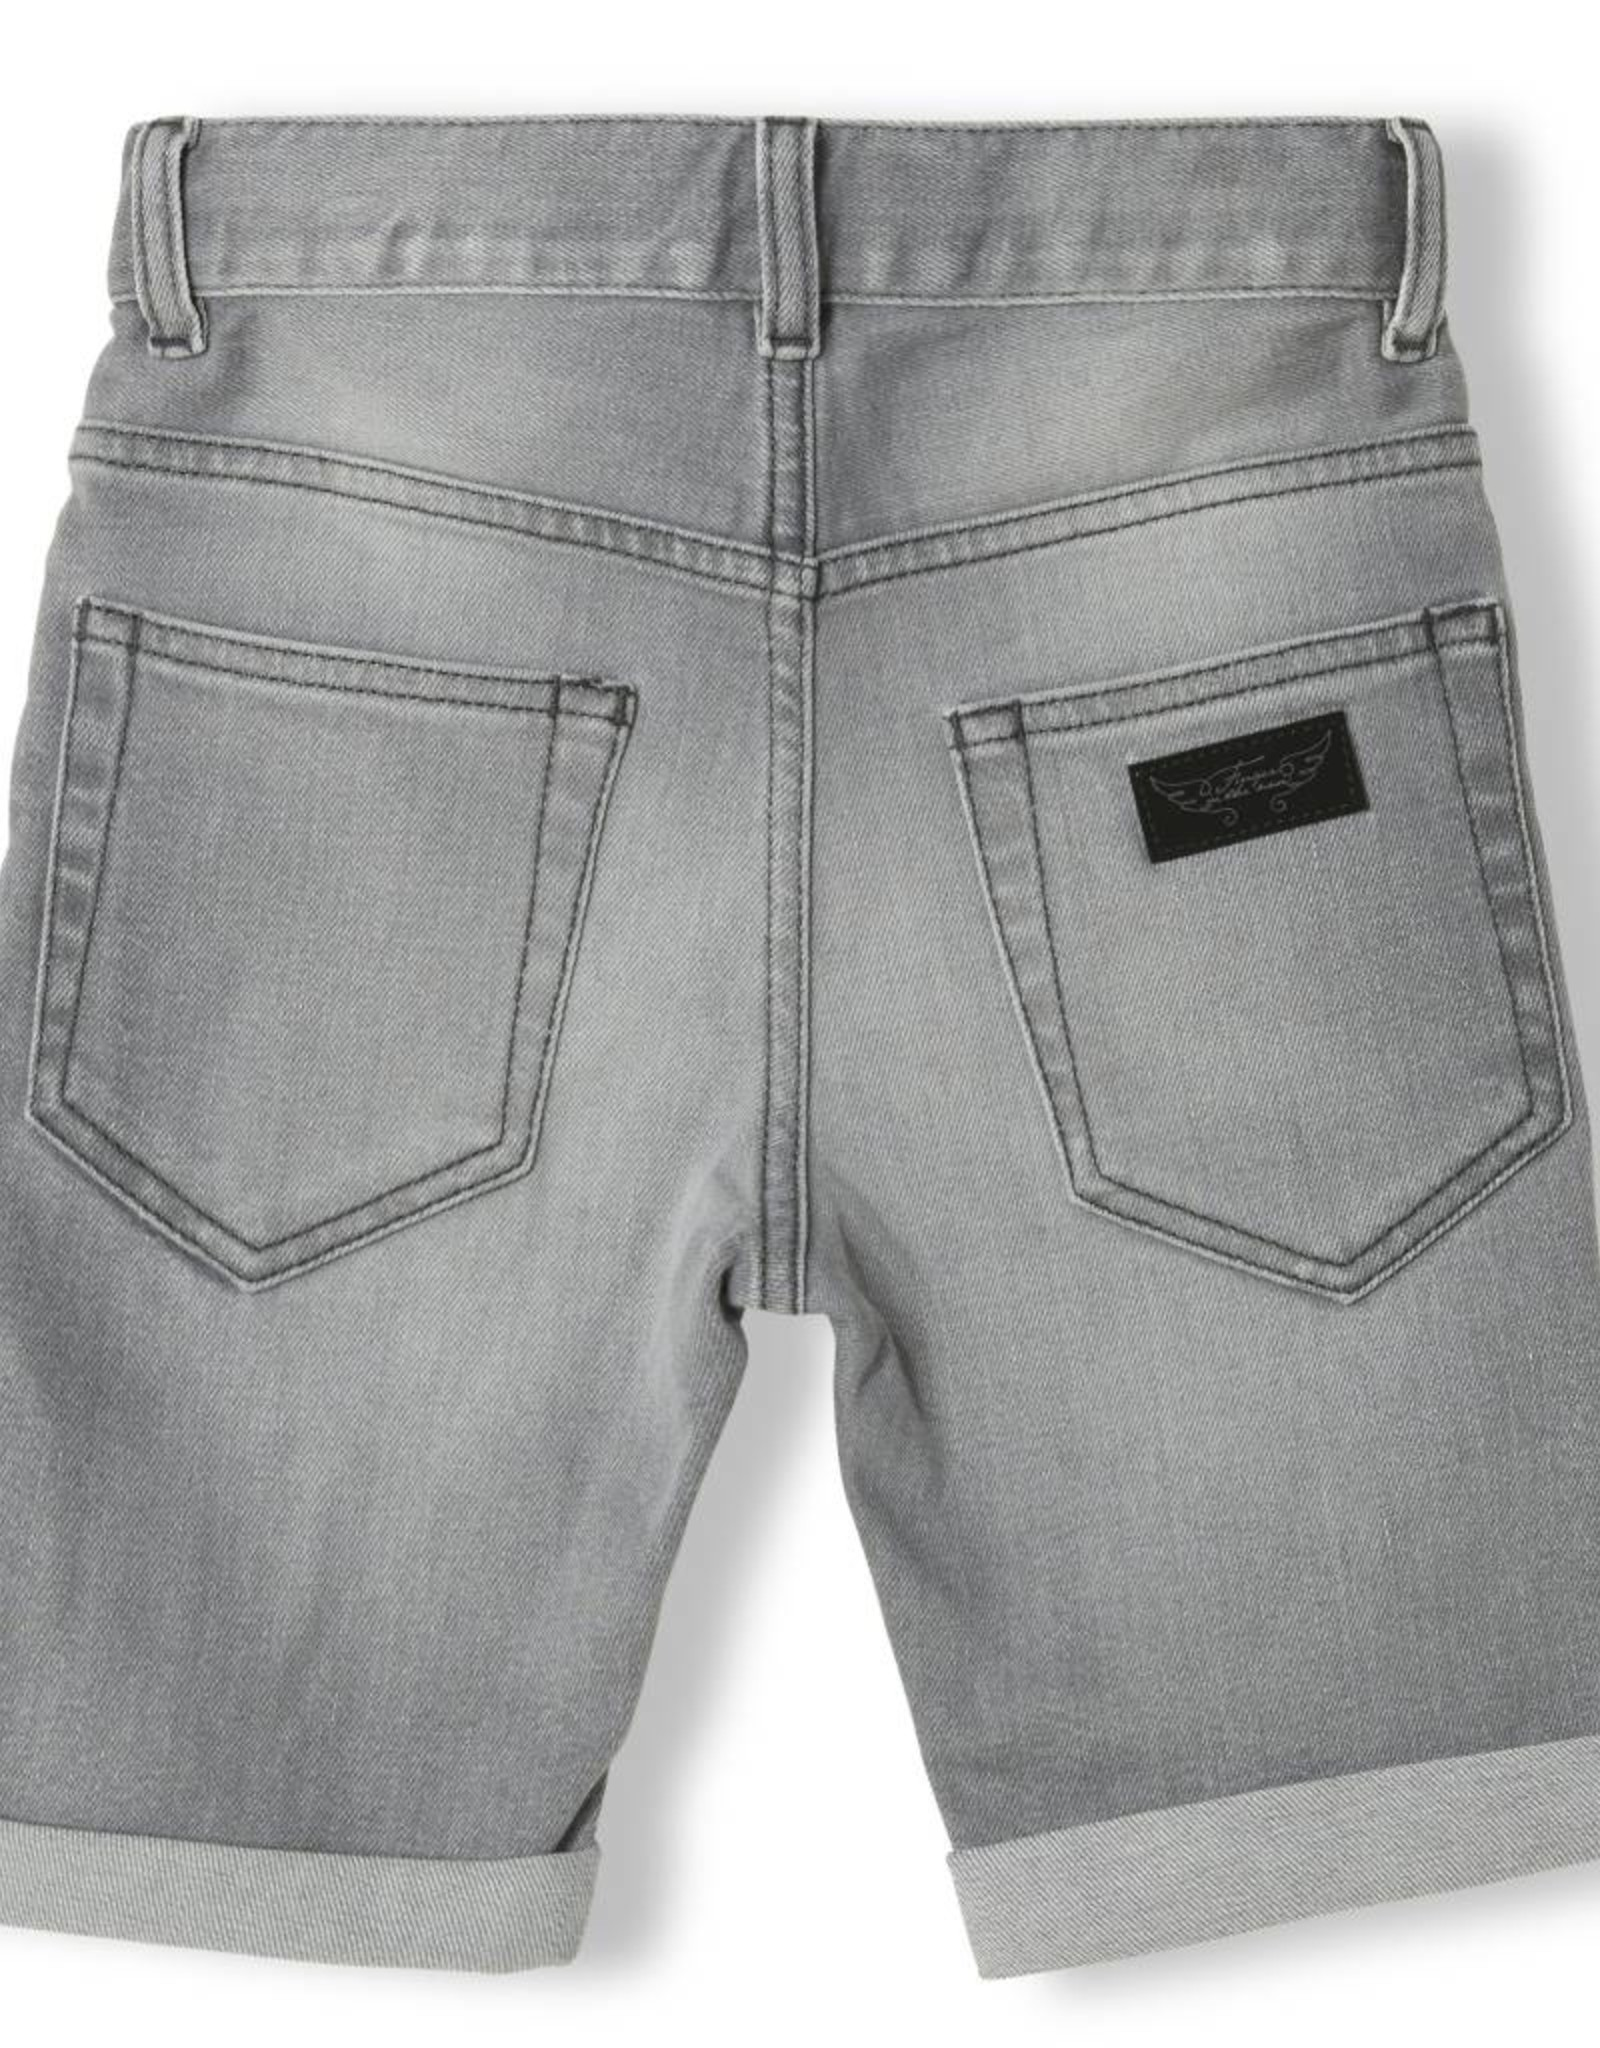 Edmond denim bermuda